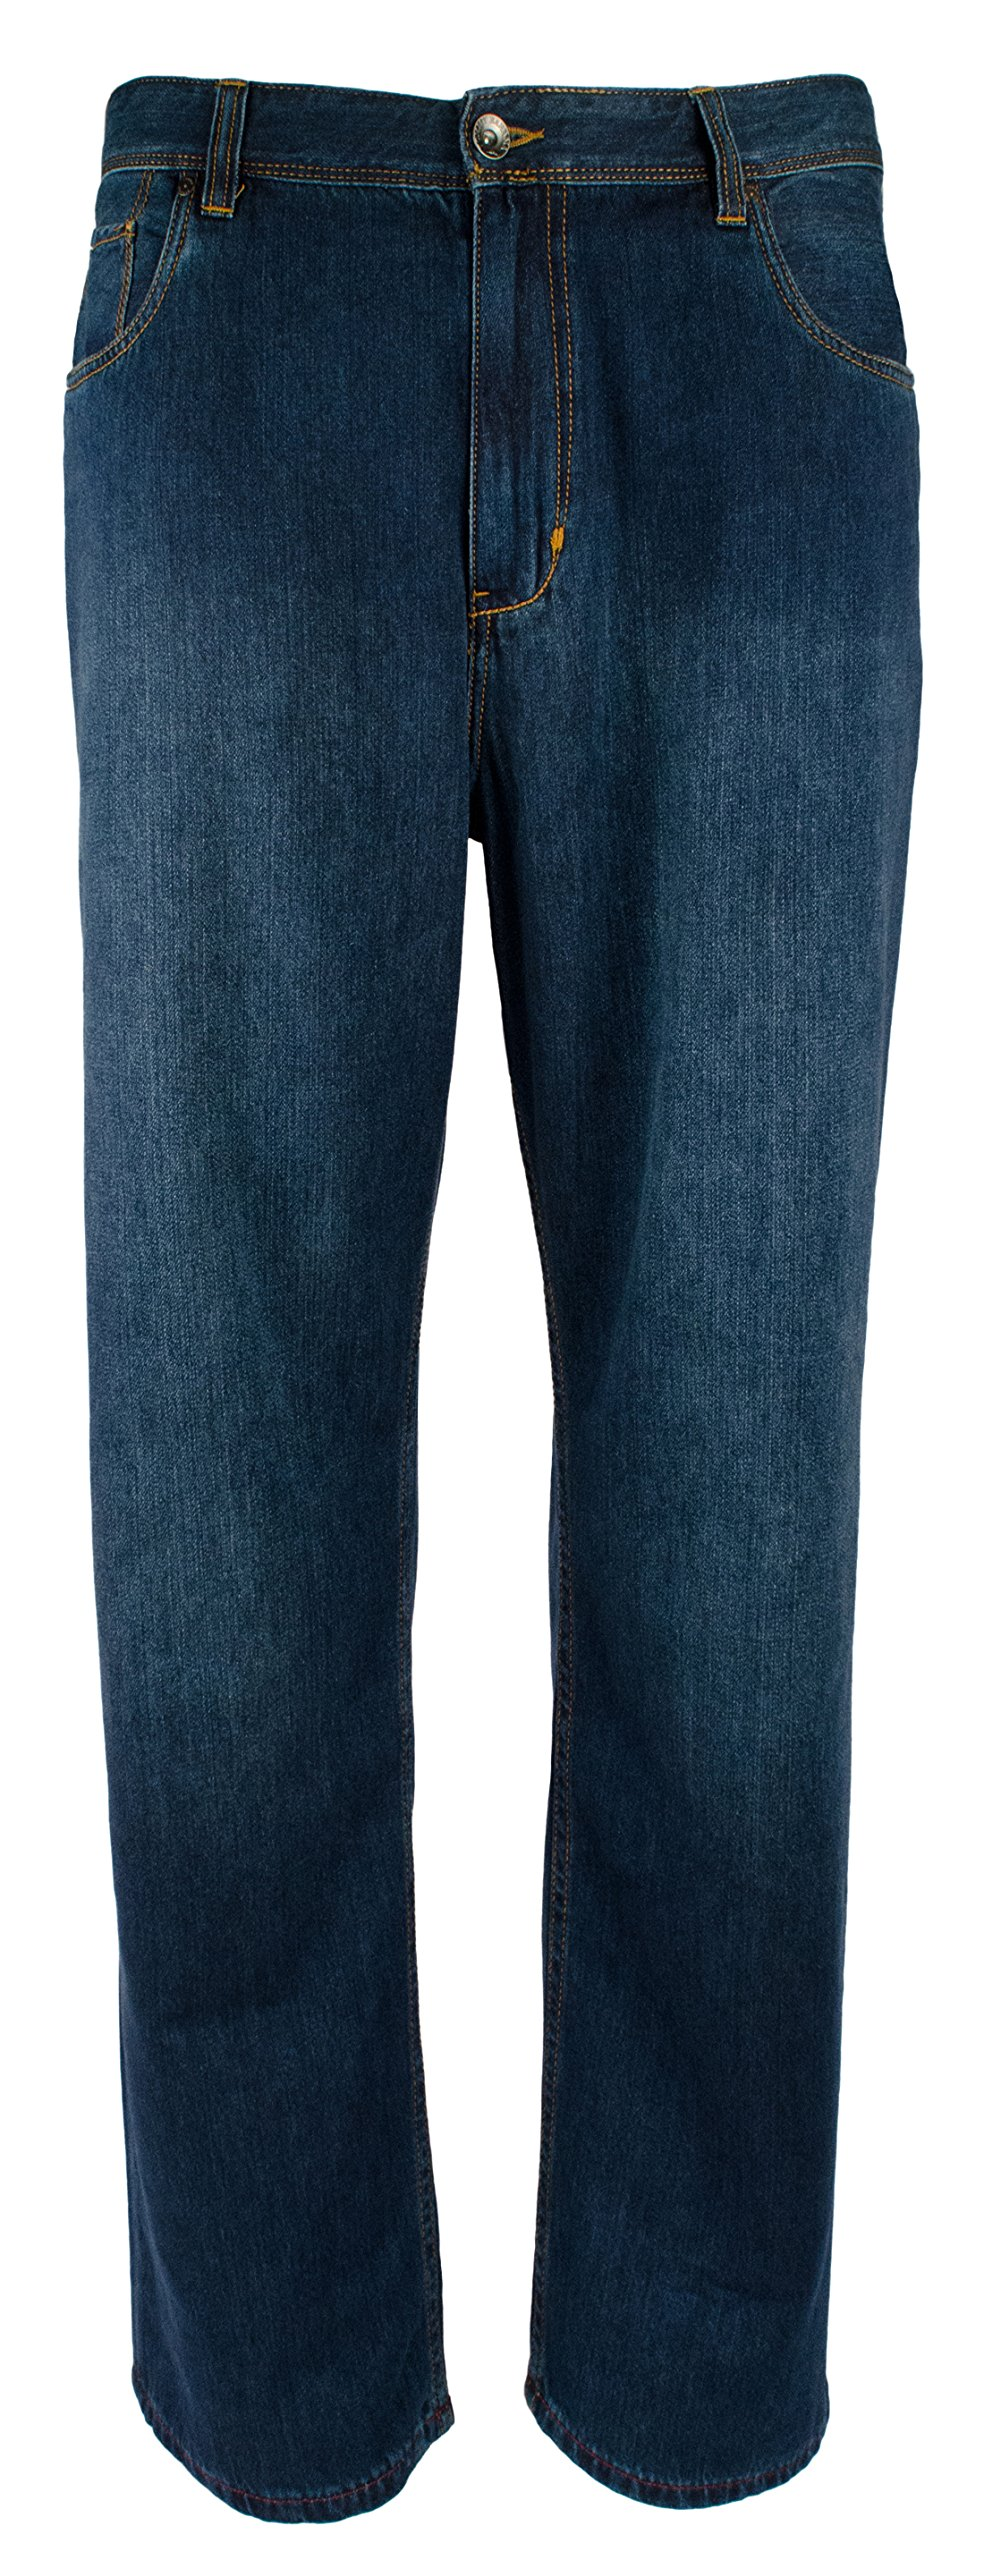 Tommy Bahama Men's Big & Tall Cayman Island Jeans-MCW-38Wx36L by Tommy Bahama